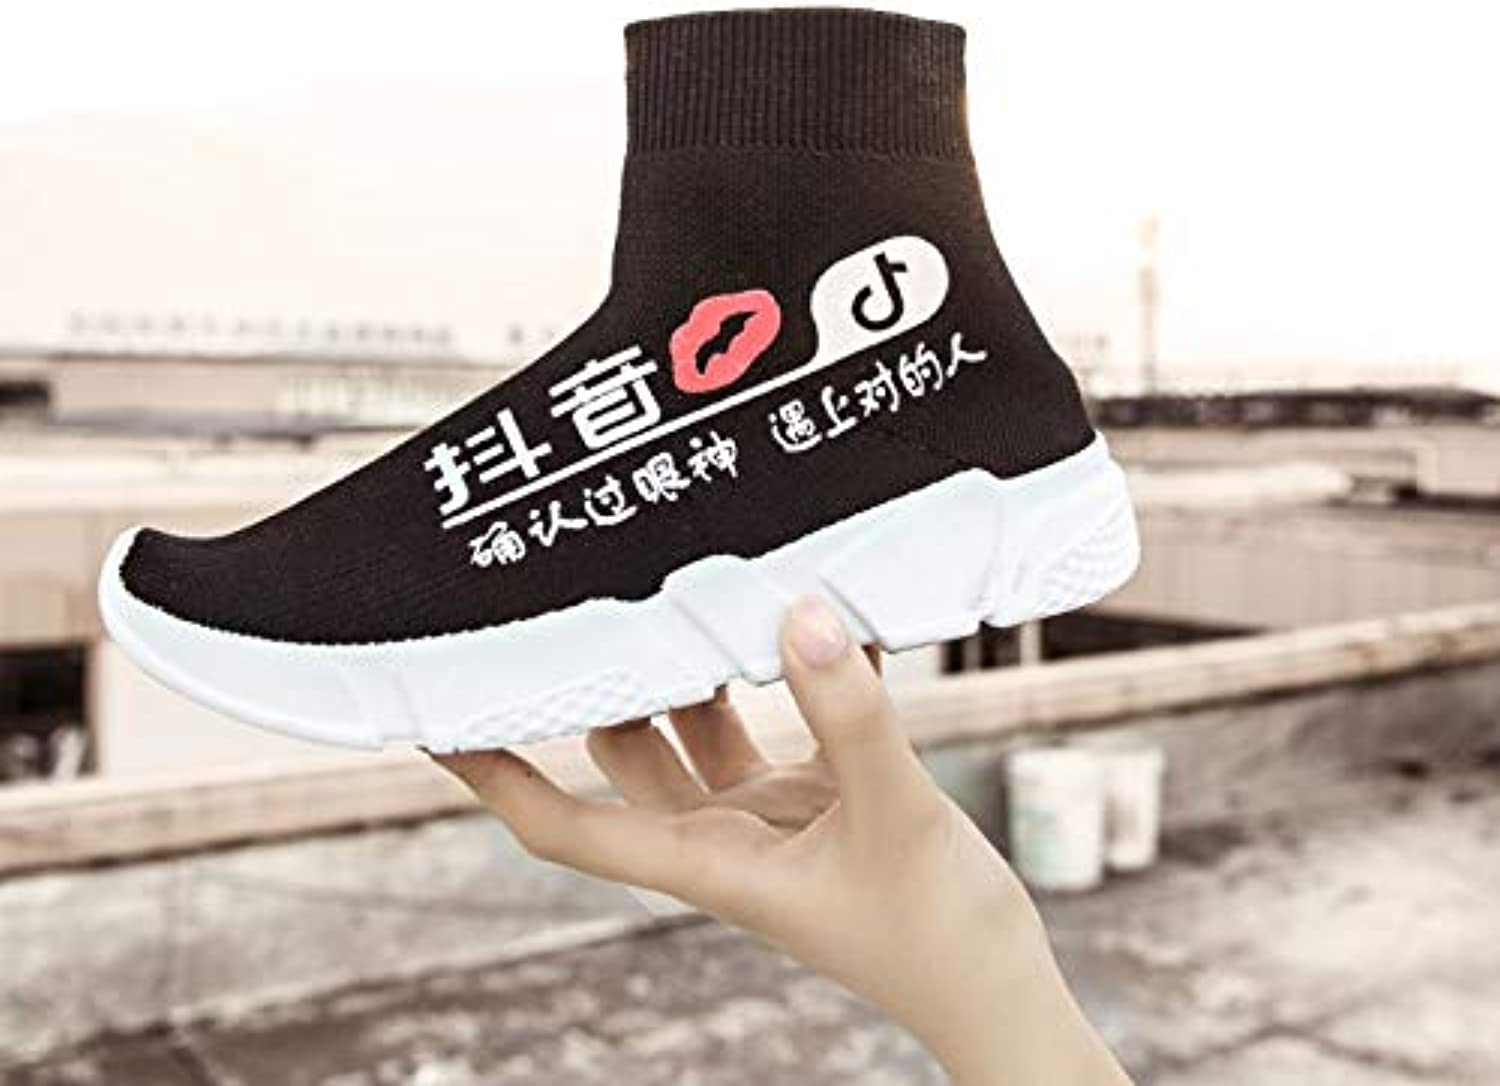 HCBYJ Socks shoes Summer men's shoes high to help socks shoes men's mesh shoes breathable shoes shoes net shoes stretch cloth shoes comfortable socks shoes